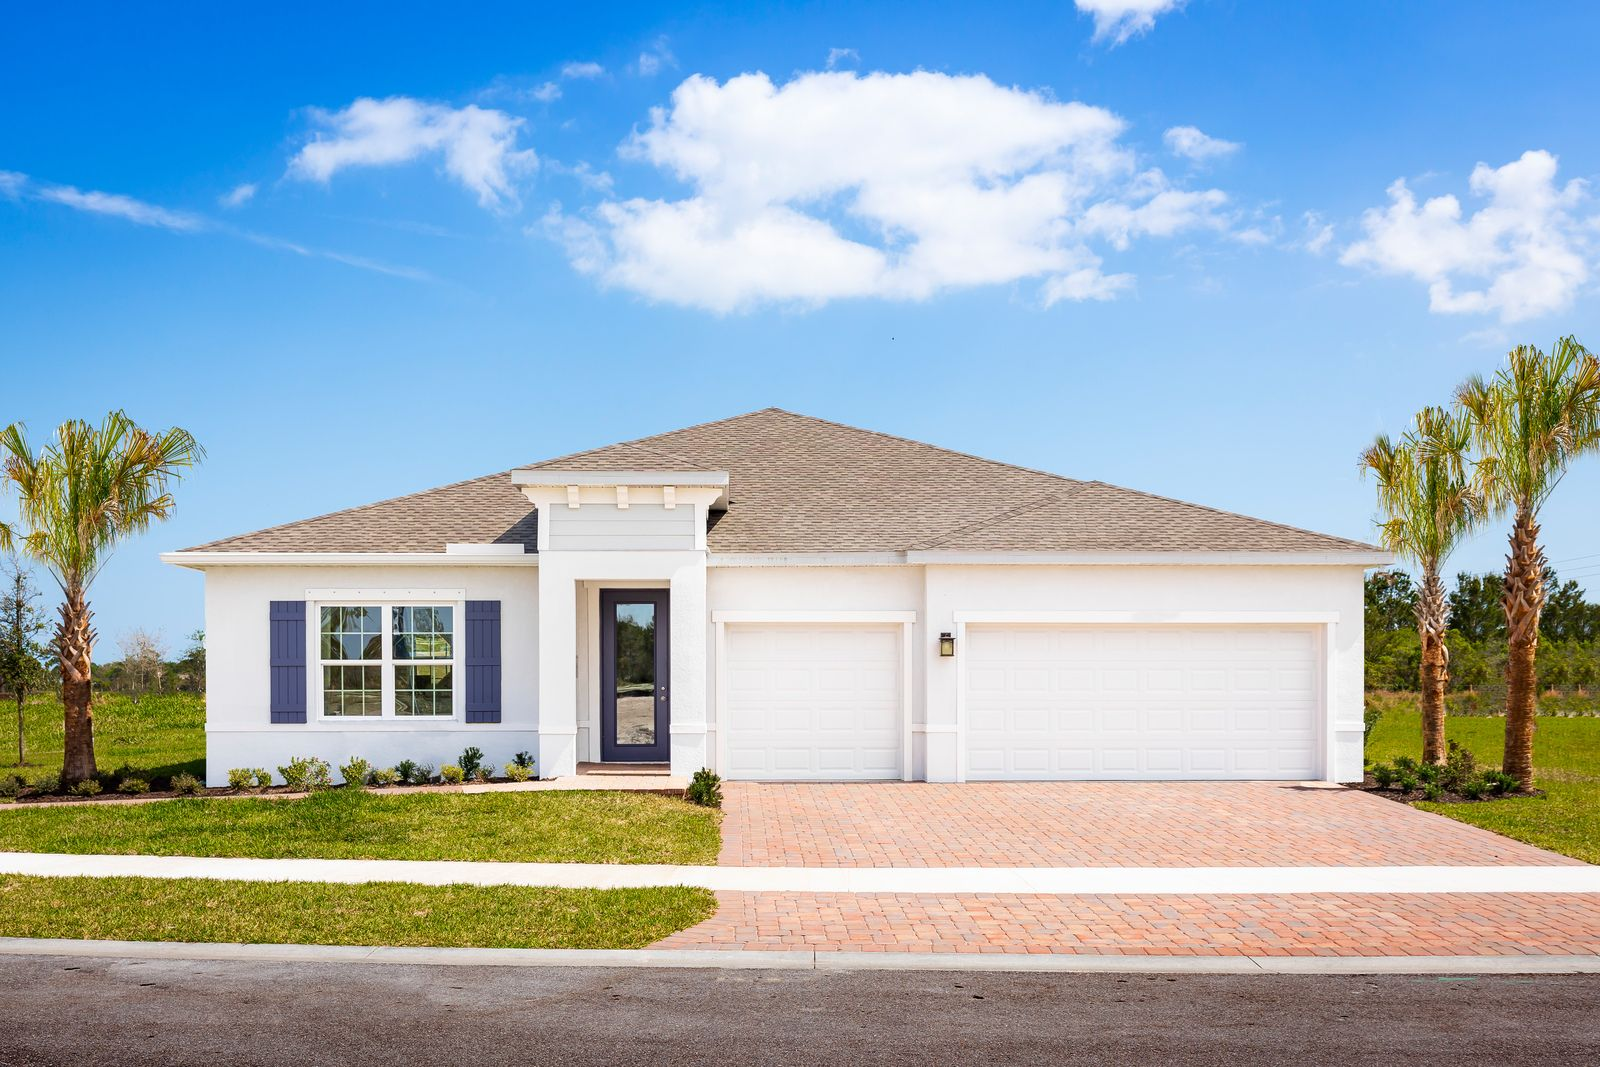 WELCOME HOME TO HUNTINGTON PLACE IN NORTH VERO BEACH - HOMES AVAILABLE NOW!:Learn more about our stunning single-family homes featuring 1/4 acre homesites and 3-car garage options.Schedule your private virtual or in-person visit today!